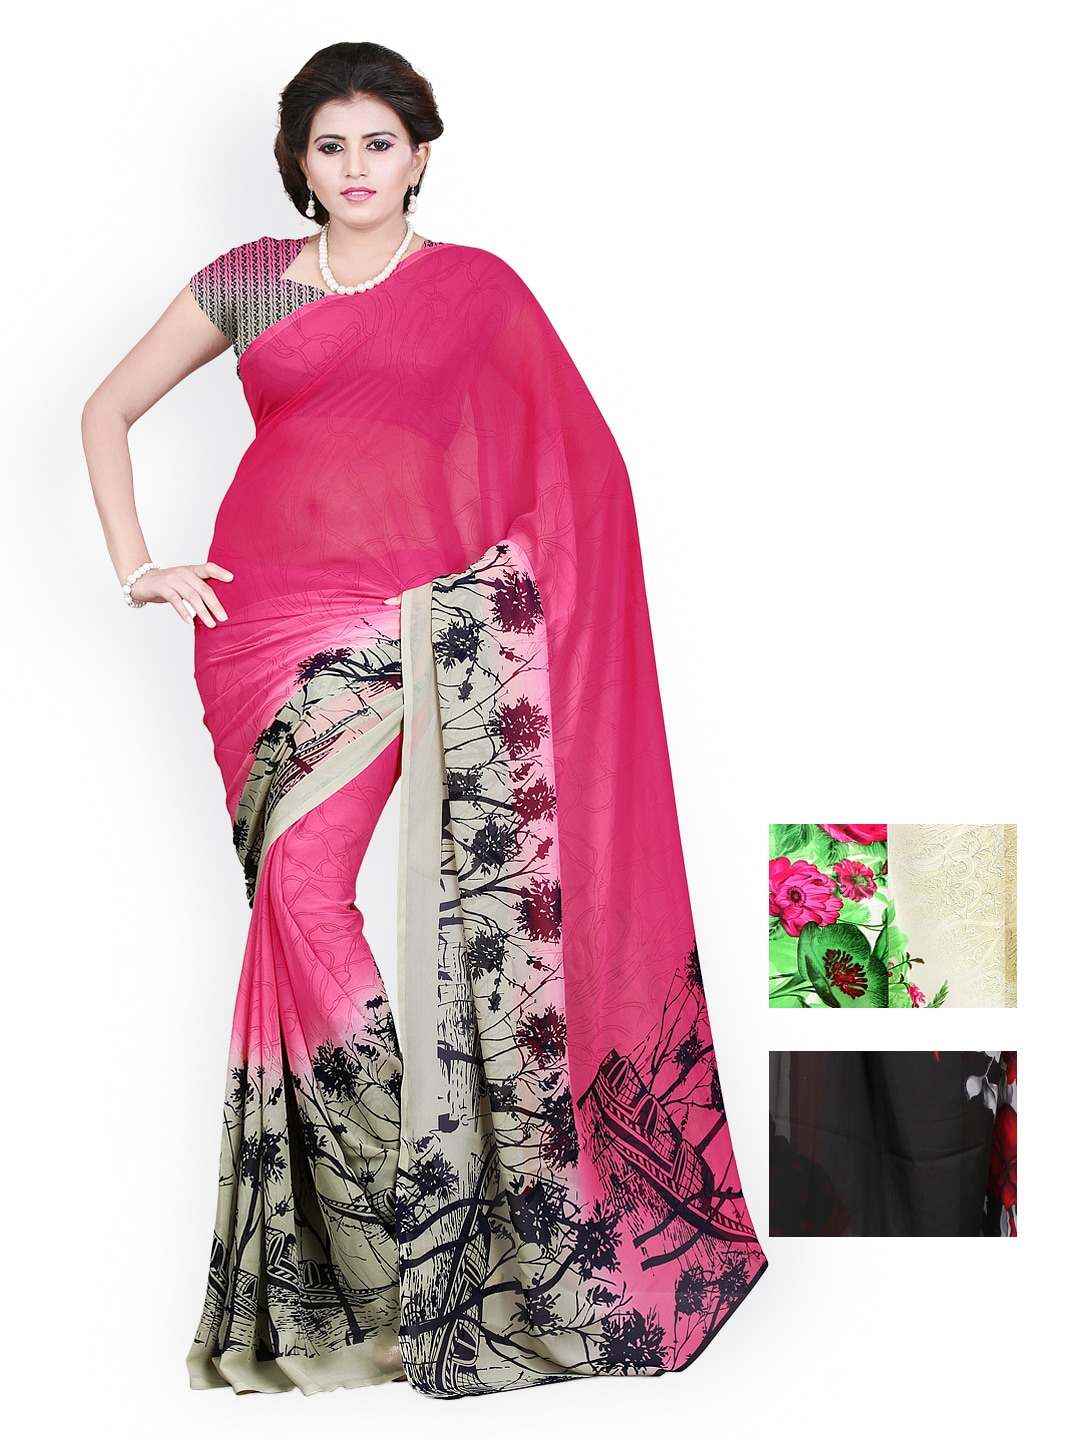 Heena Selection of 3 Georgette & Crepe Printed Sarees